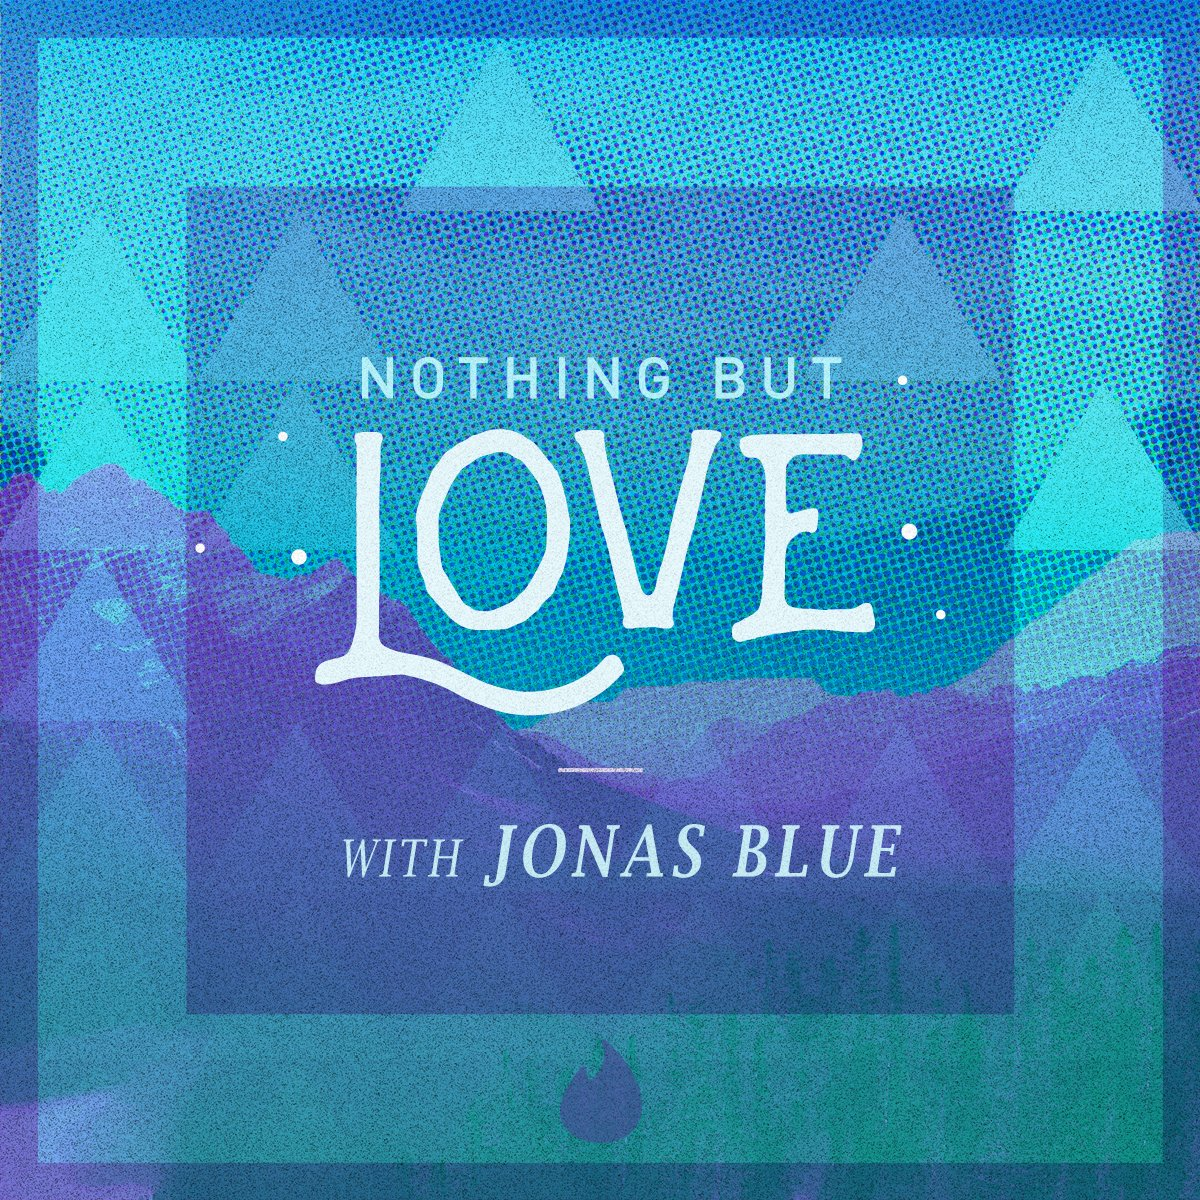 Check out my Nothing But Love playlist for @Tinder! More fun stuff coming soon 😉